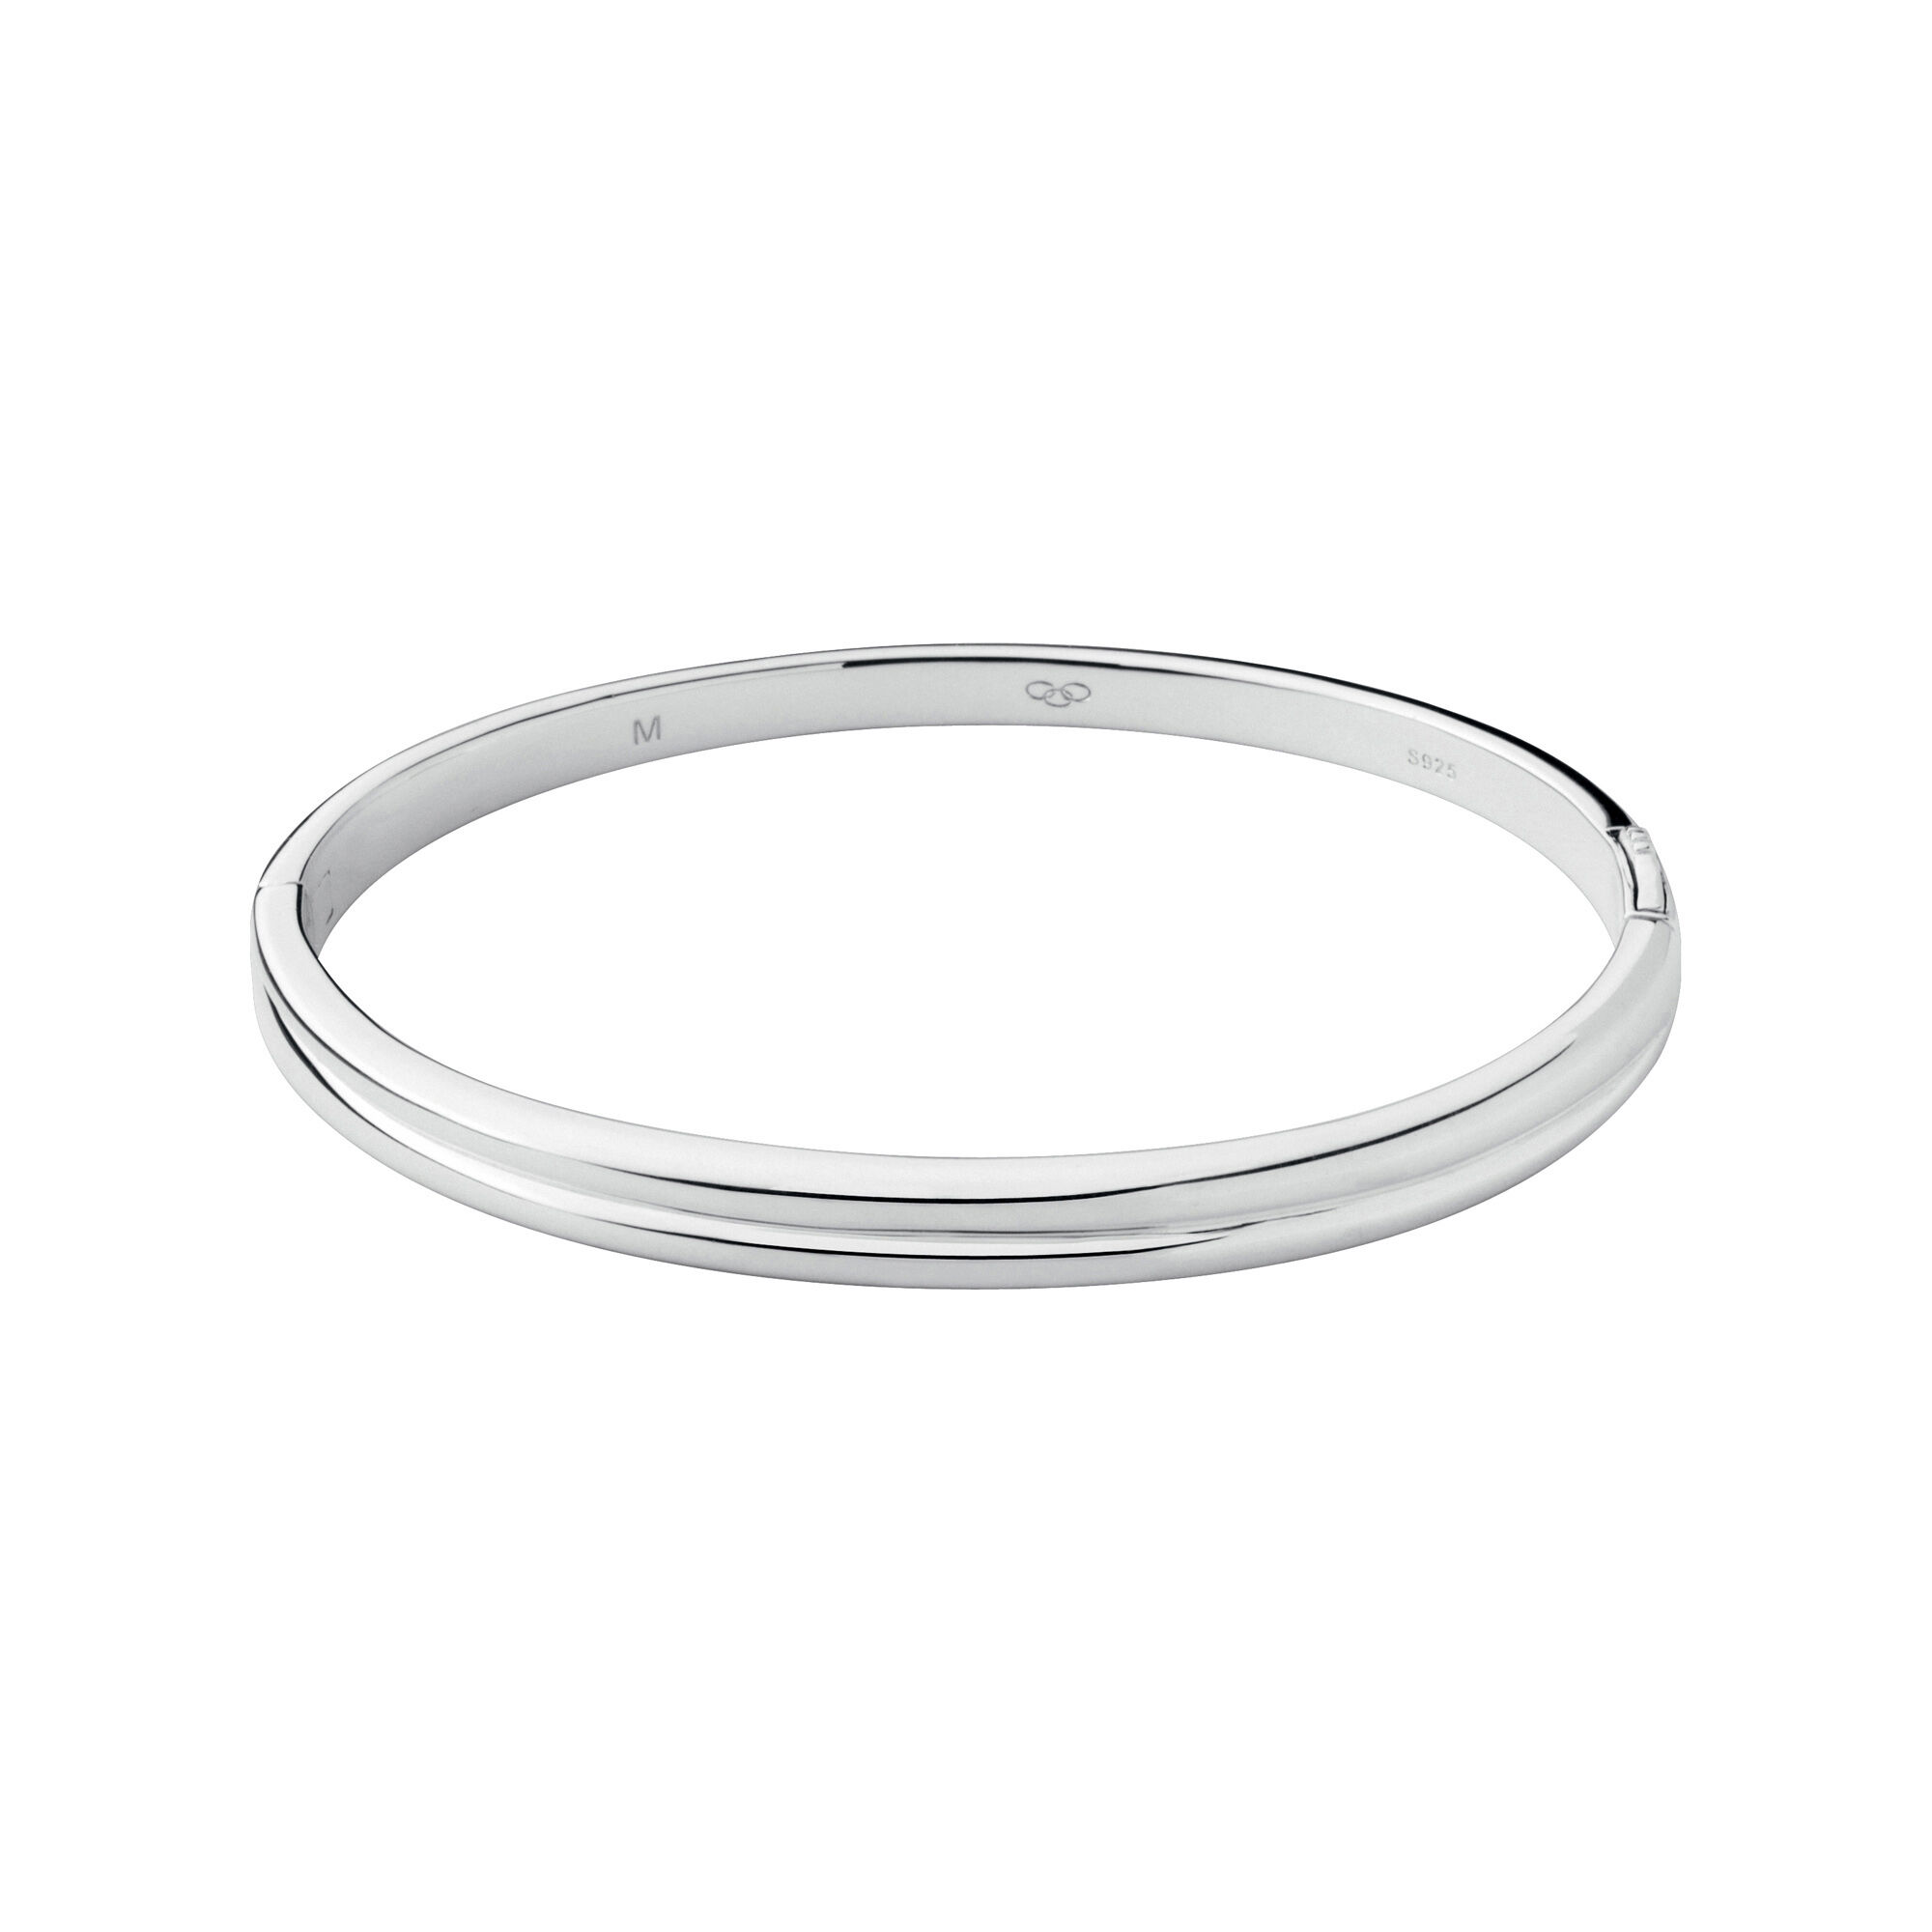 occasion occassion special bangles acfd iona small silver bangle bracelets shop